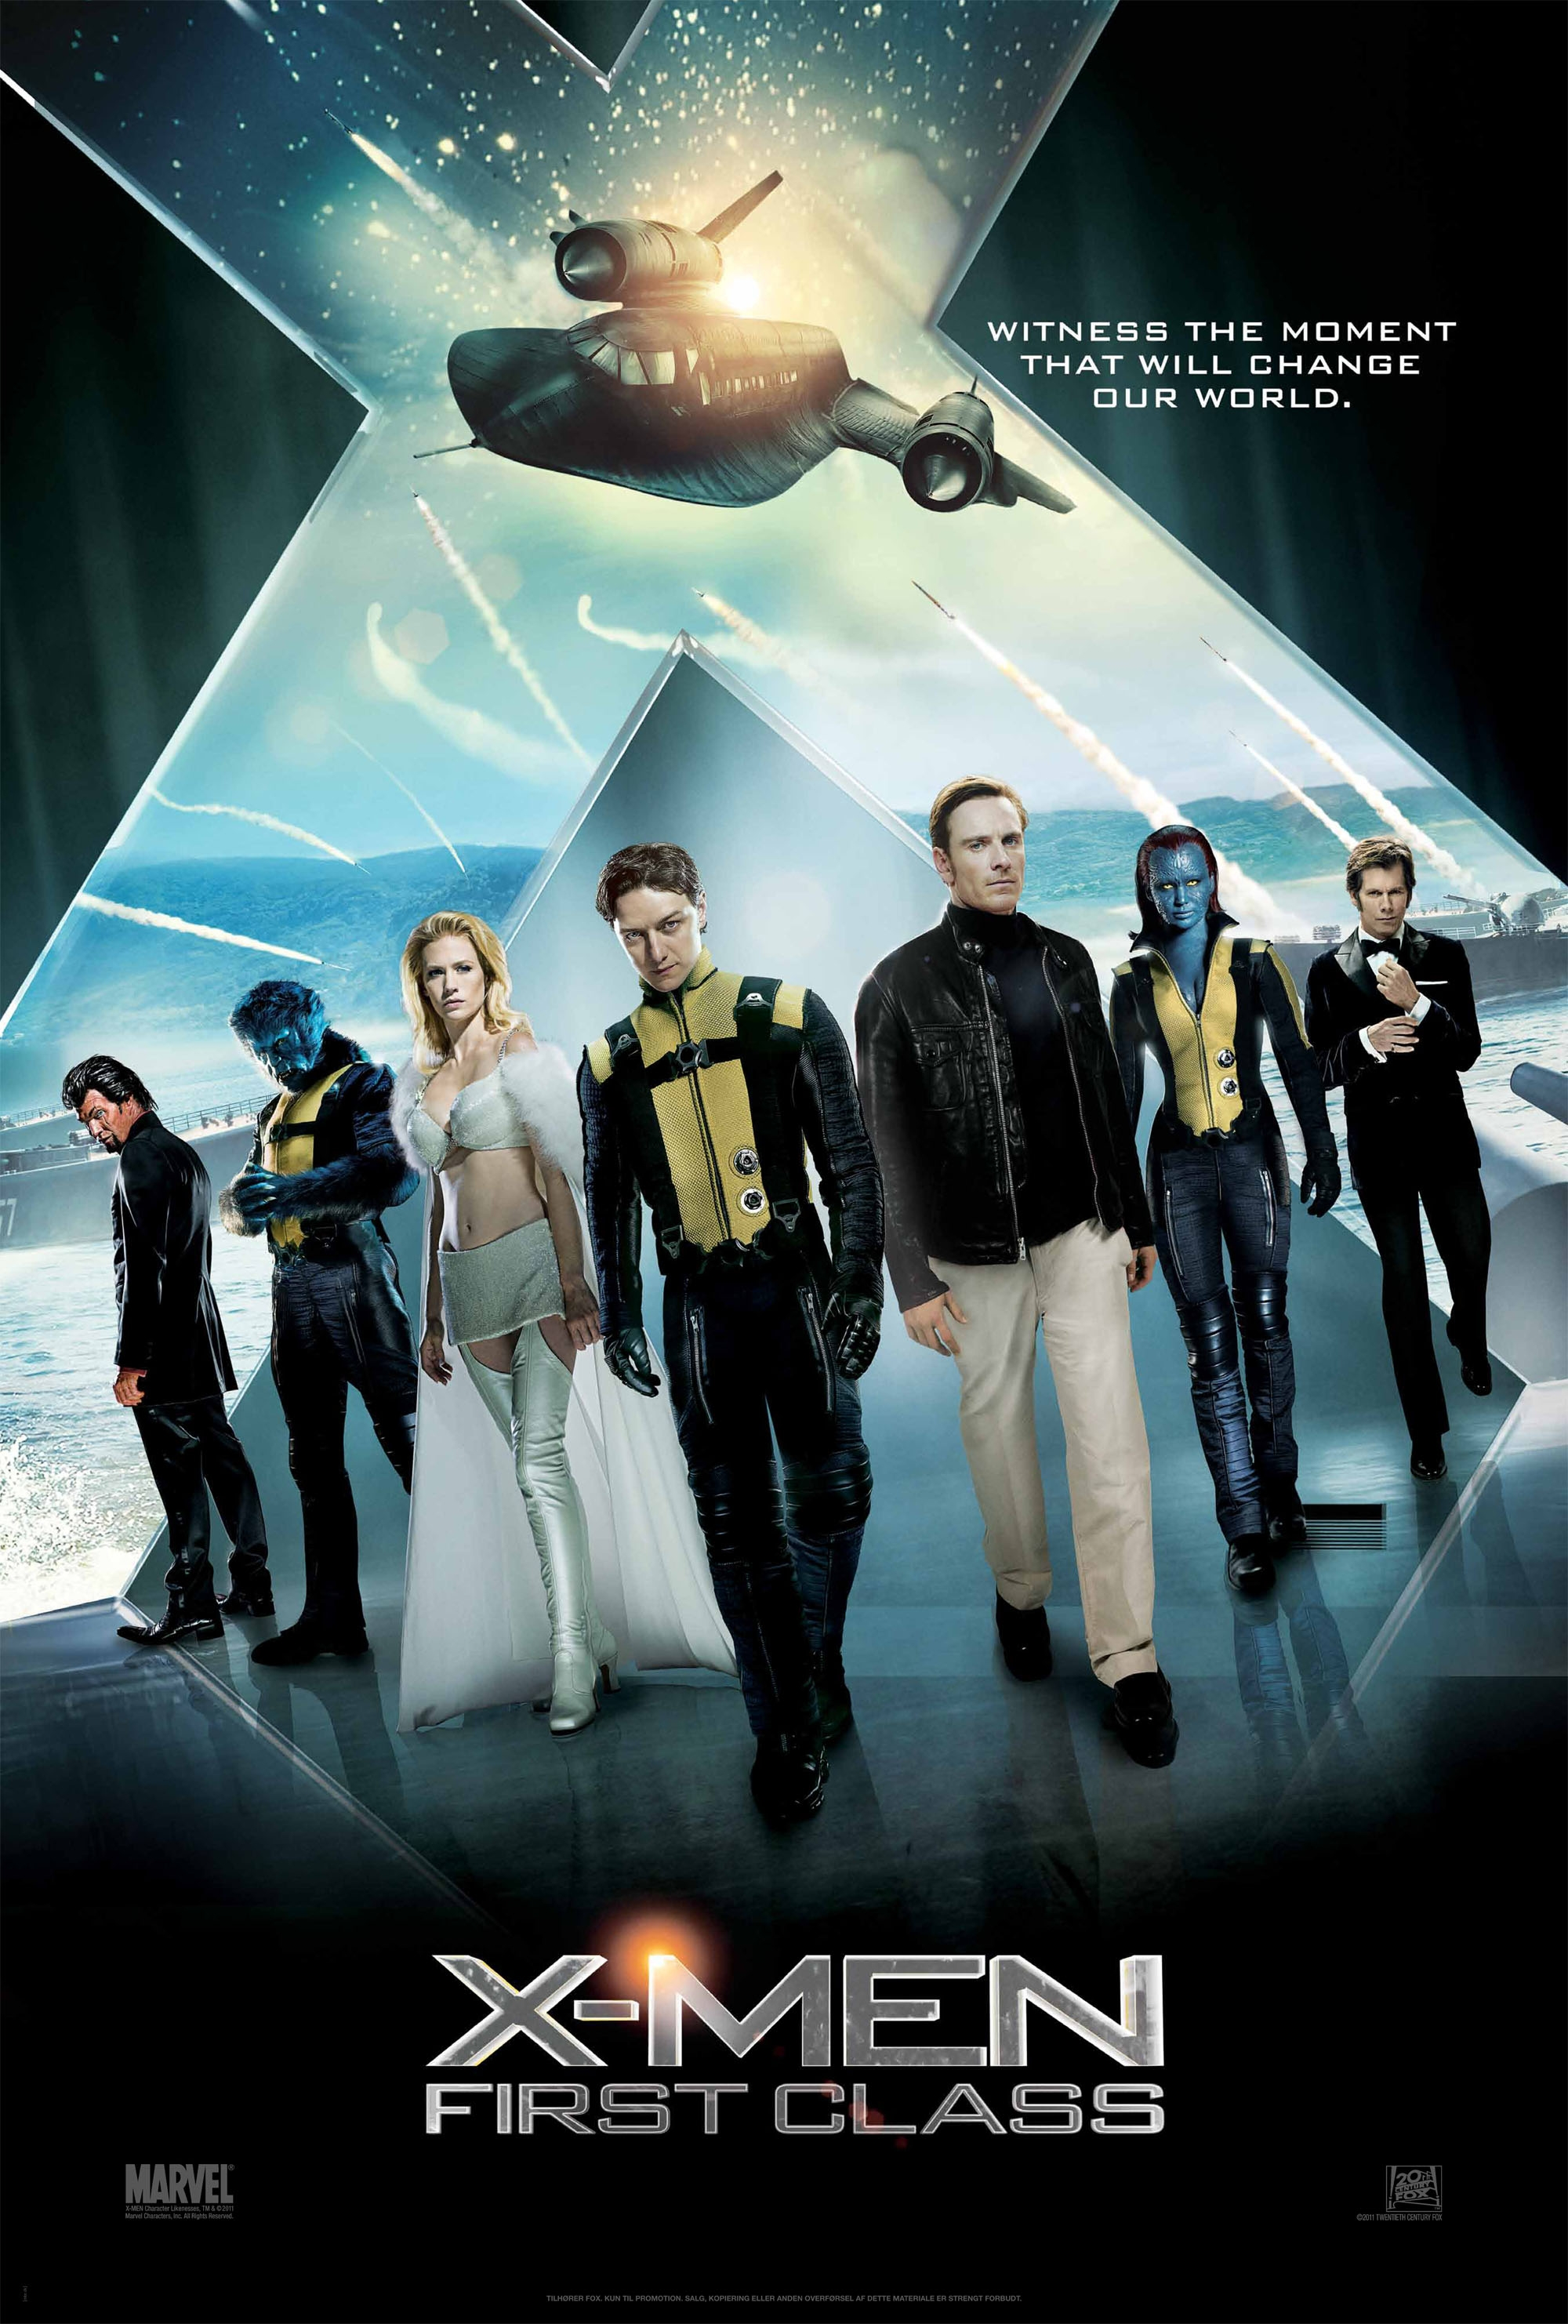 X-Men First Class- Costume makers for film